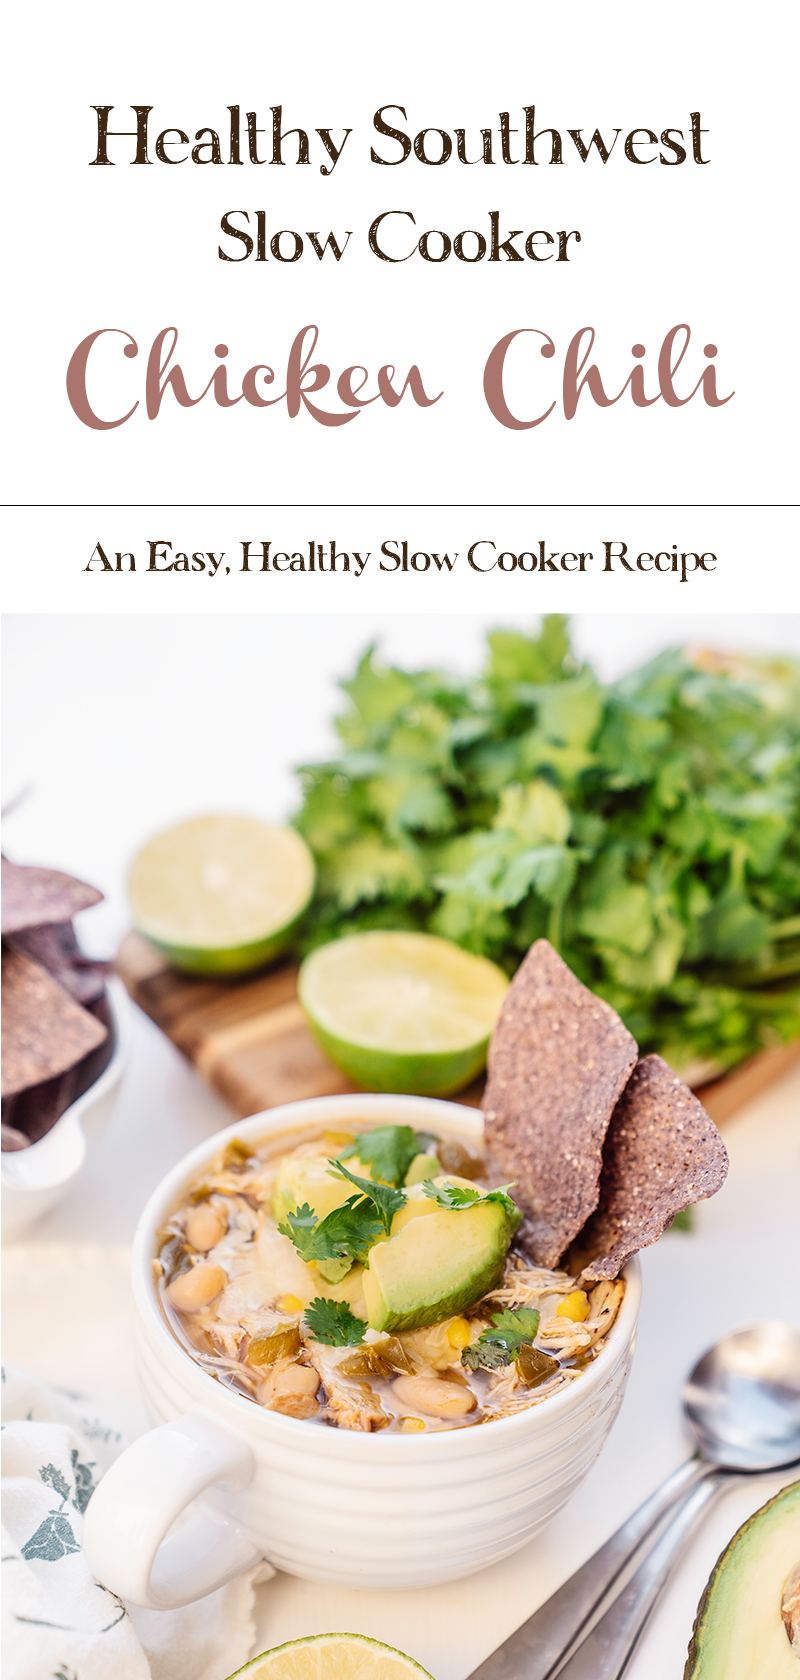 Healthy-Southwestern-Slow-Cooker-White-Chicken-Chili